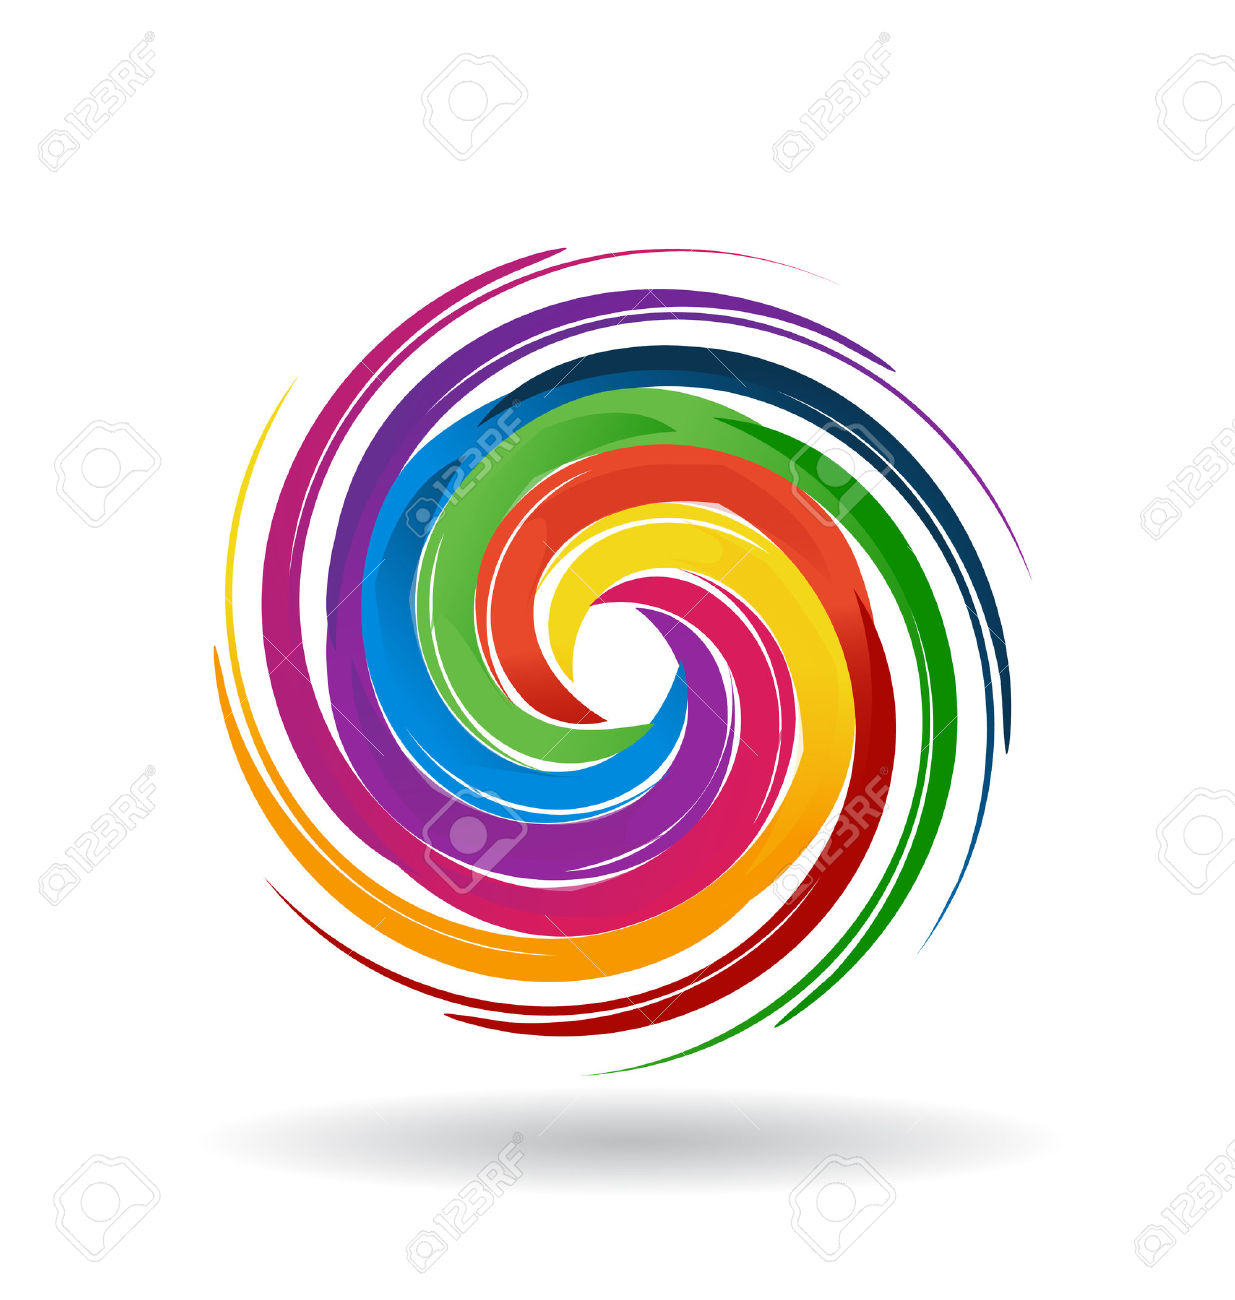 Spiral Orb Web Cliparts, Stock Vector And Royalty Free Spiral Orb.